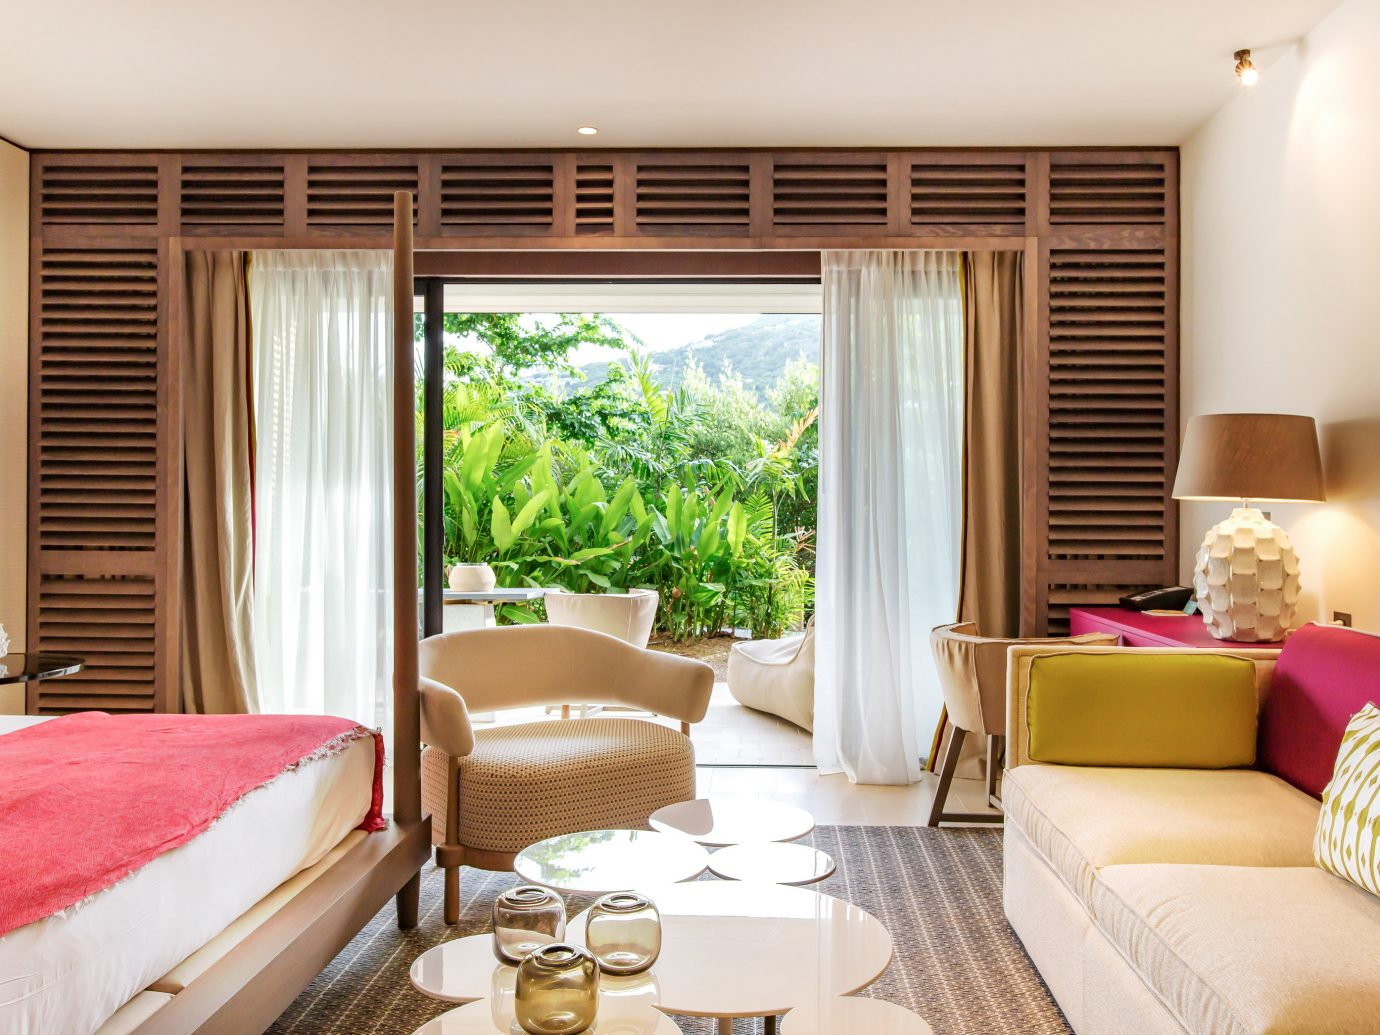 Hotels window indoor sofa room wall floor Living bed property living room Suite interior design estate Bedroom home condominium real estate cottage window covering furniture hotel decorated containing